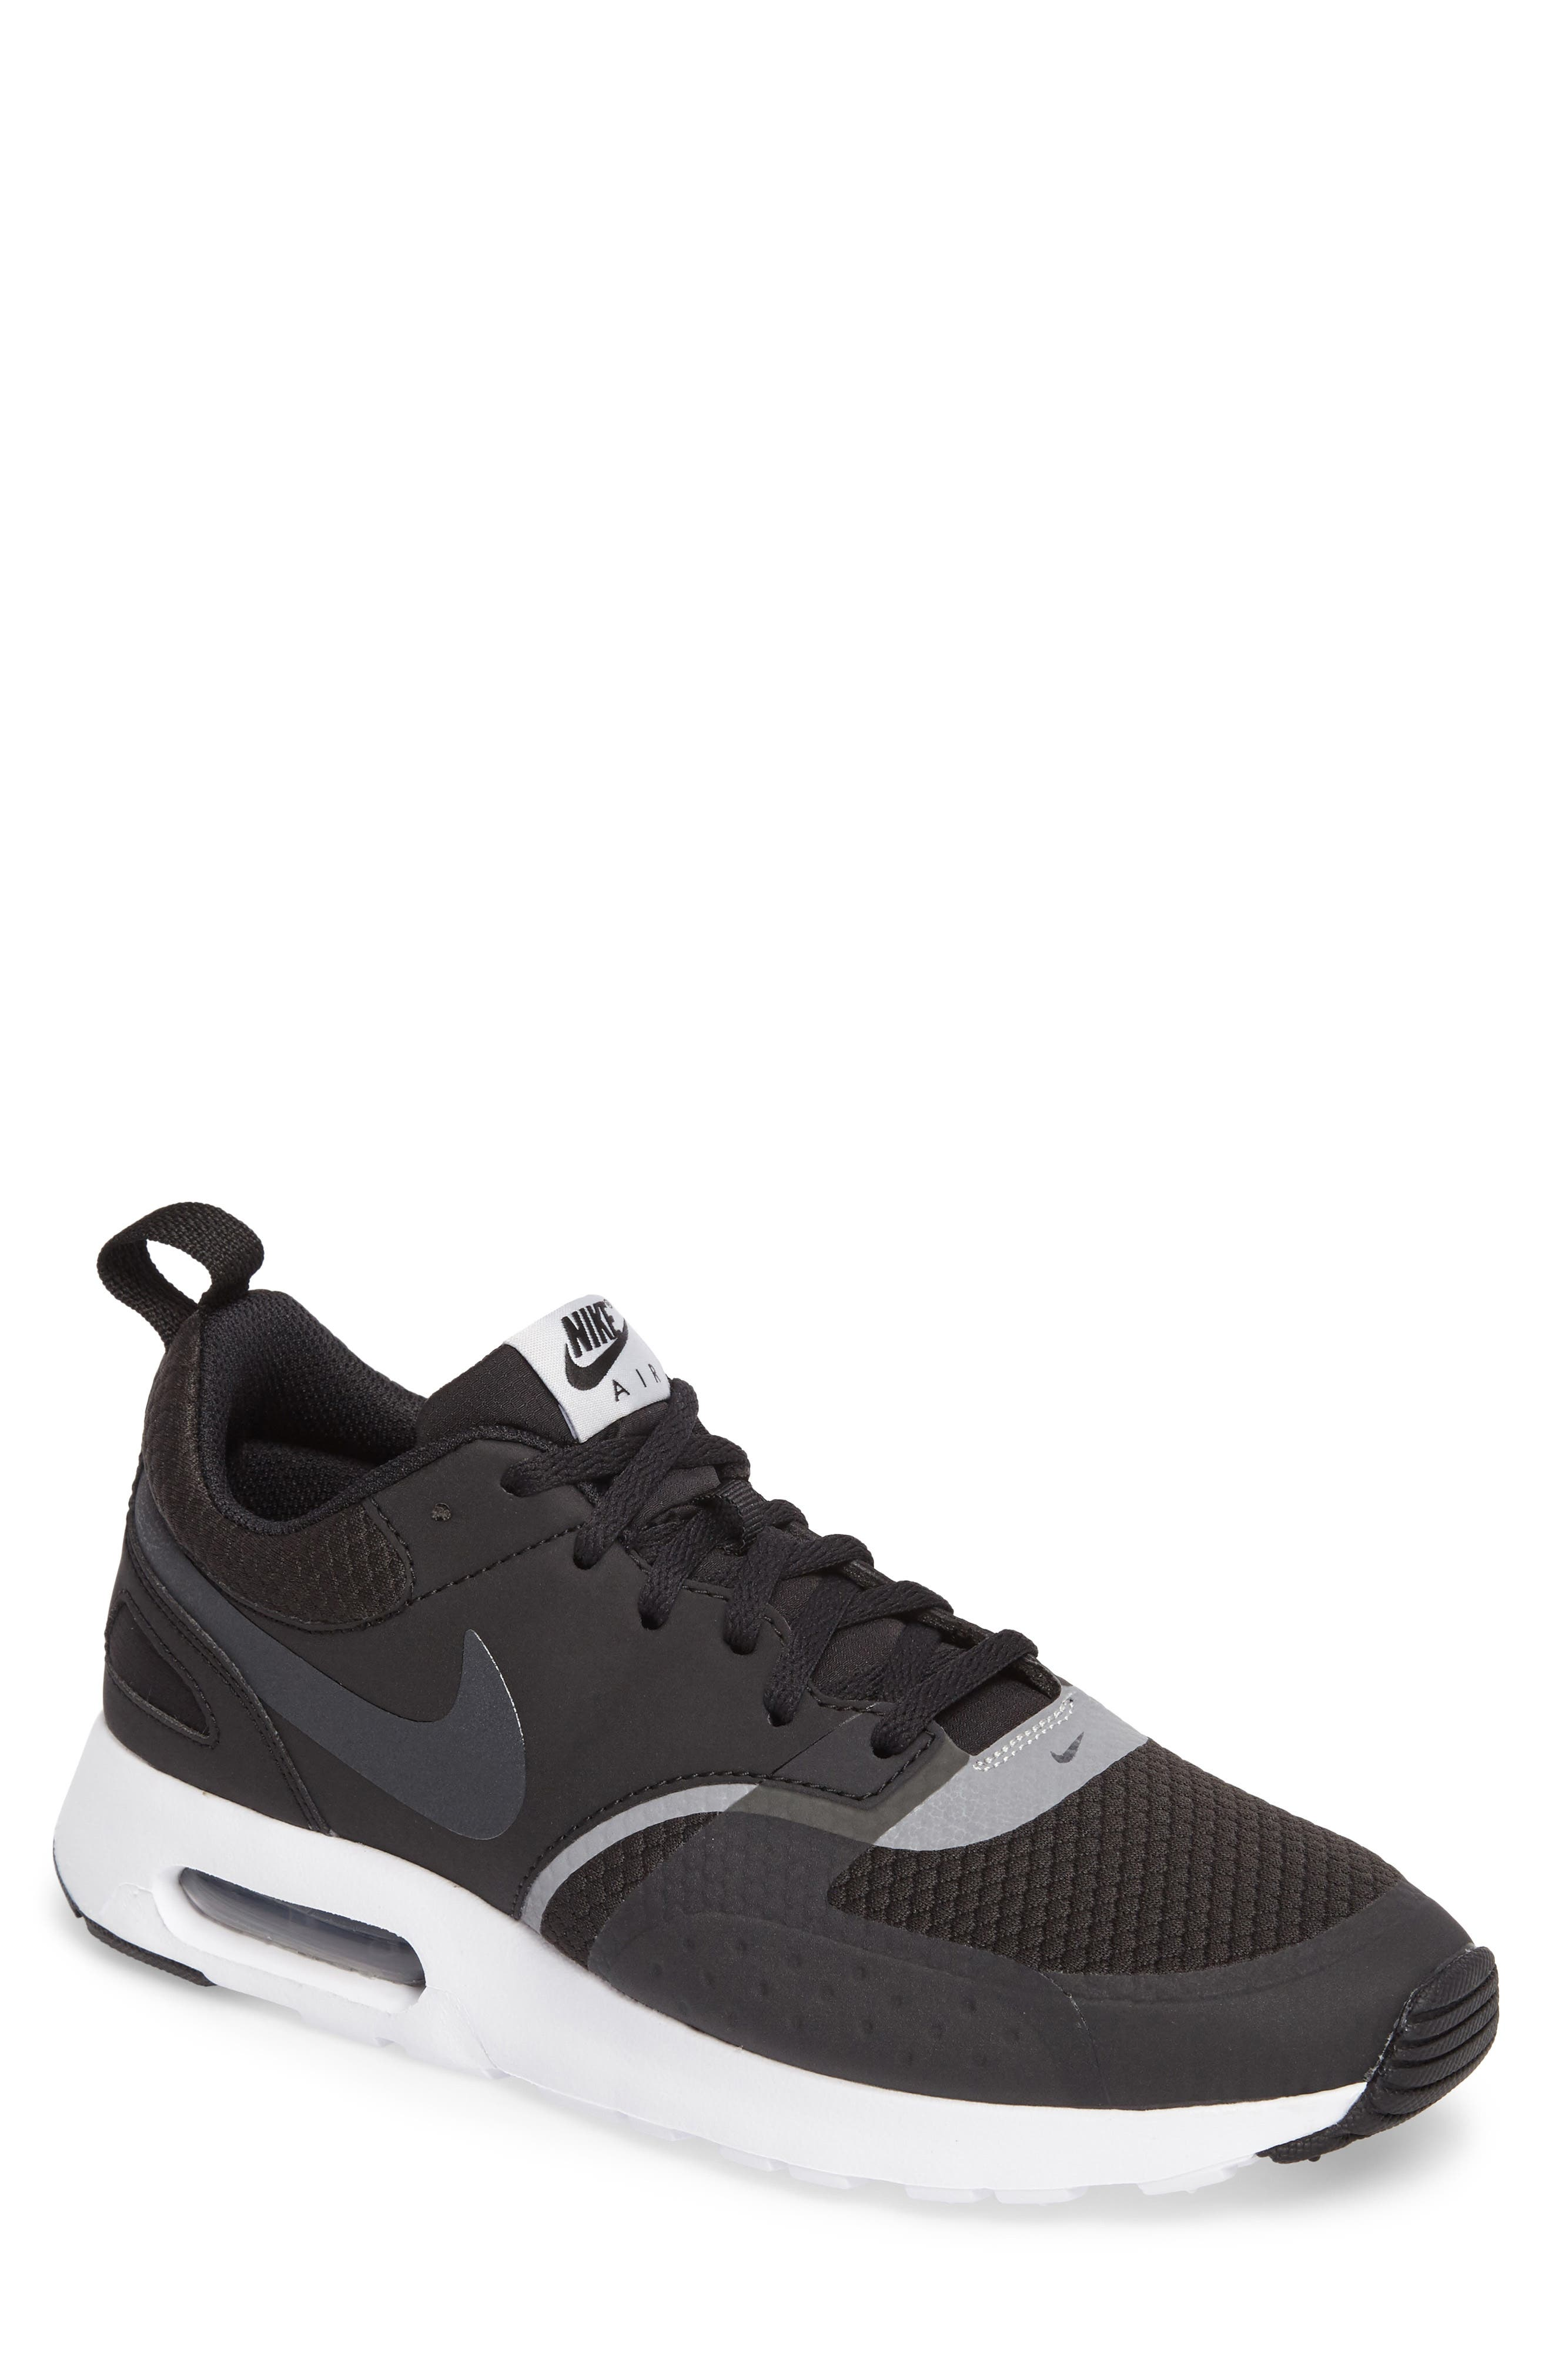 Nike Air Max Vision SE Sneaker (Men)